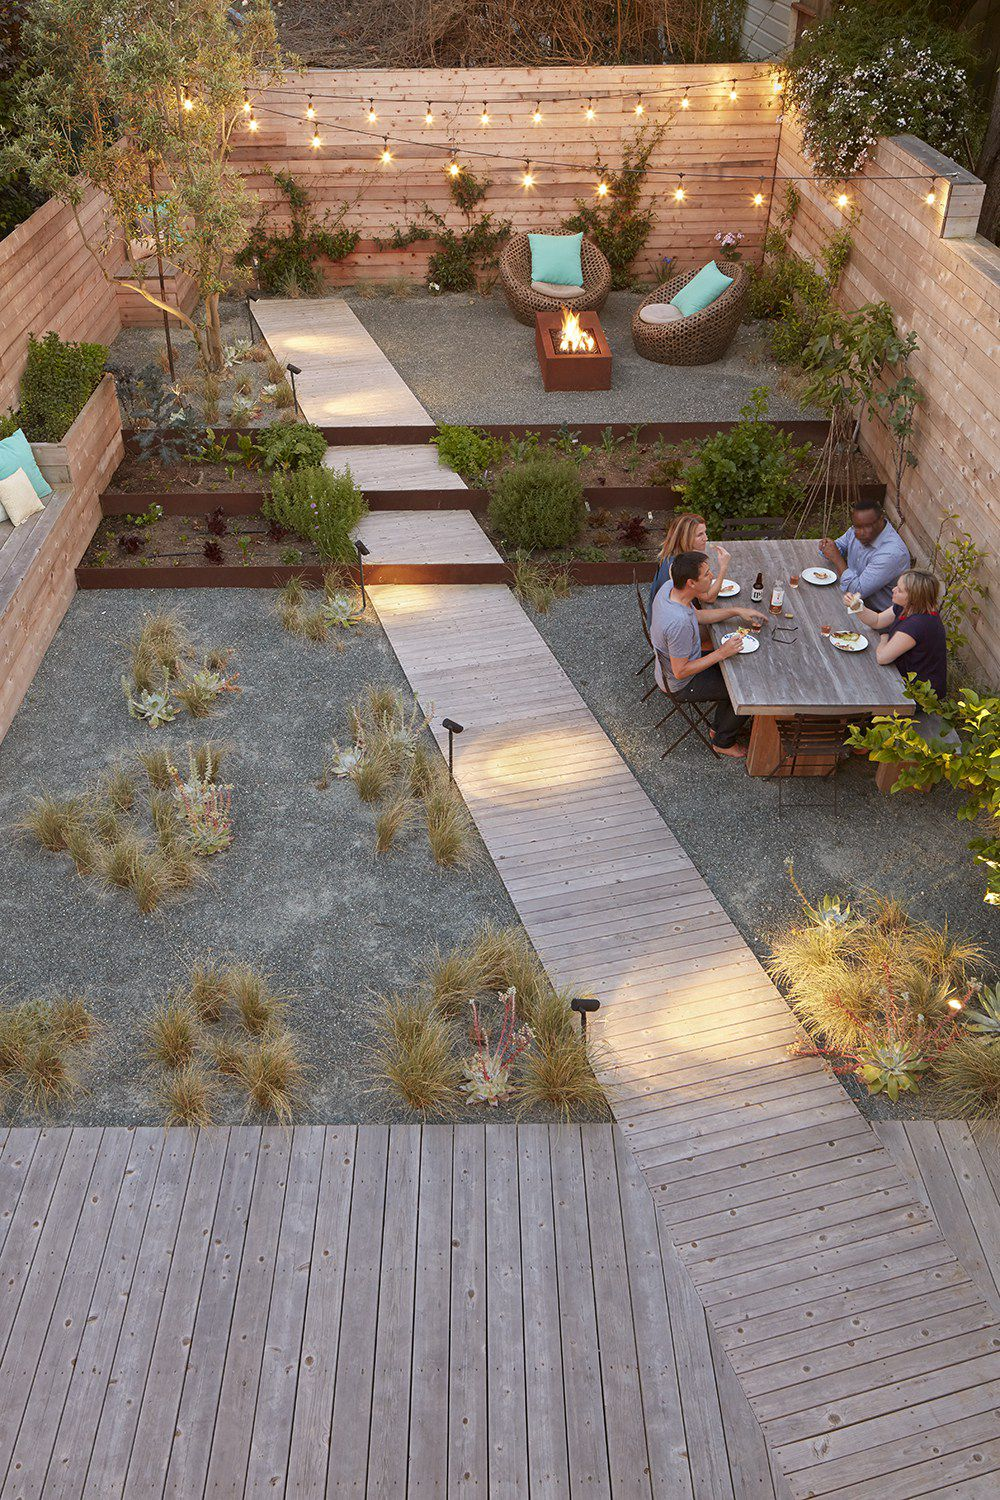 housing-design-san-francisco-backyard-yamamar-terremoto-7.jpg